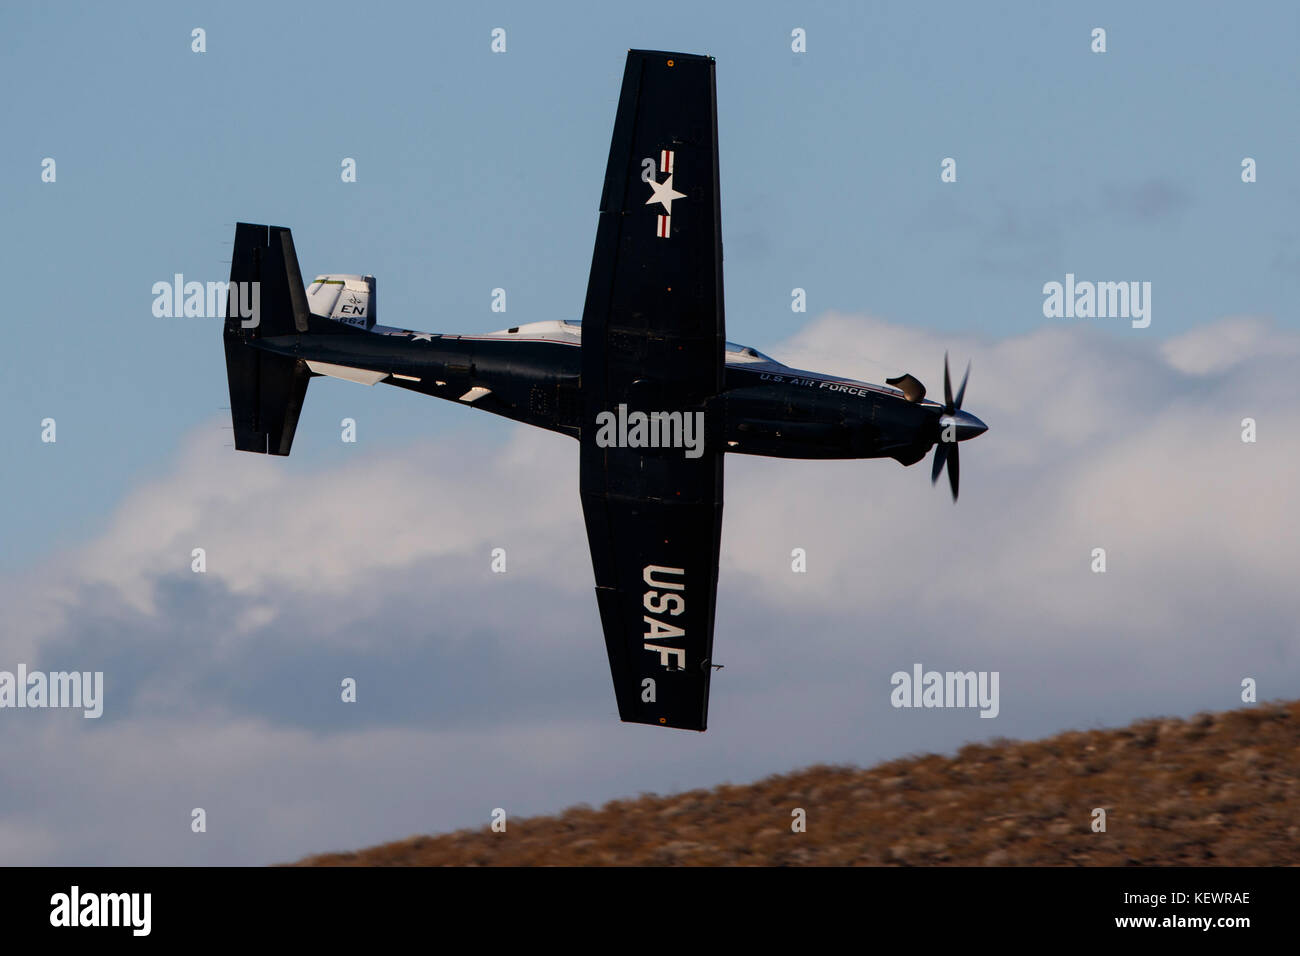 Beechcraft T-6 Texan II from United States Air Force 80th Flying Training Wing, Sheppard Air Force Base, Texas, - Stock Image